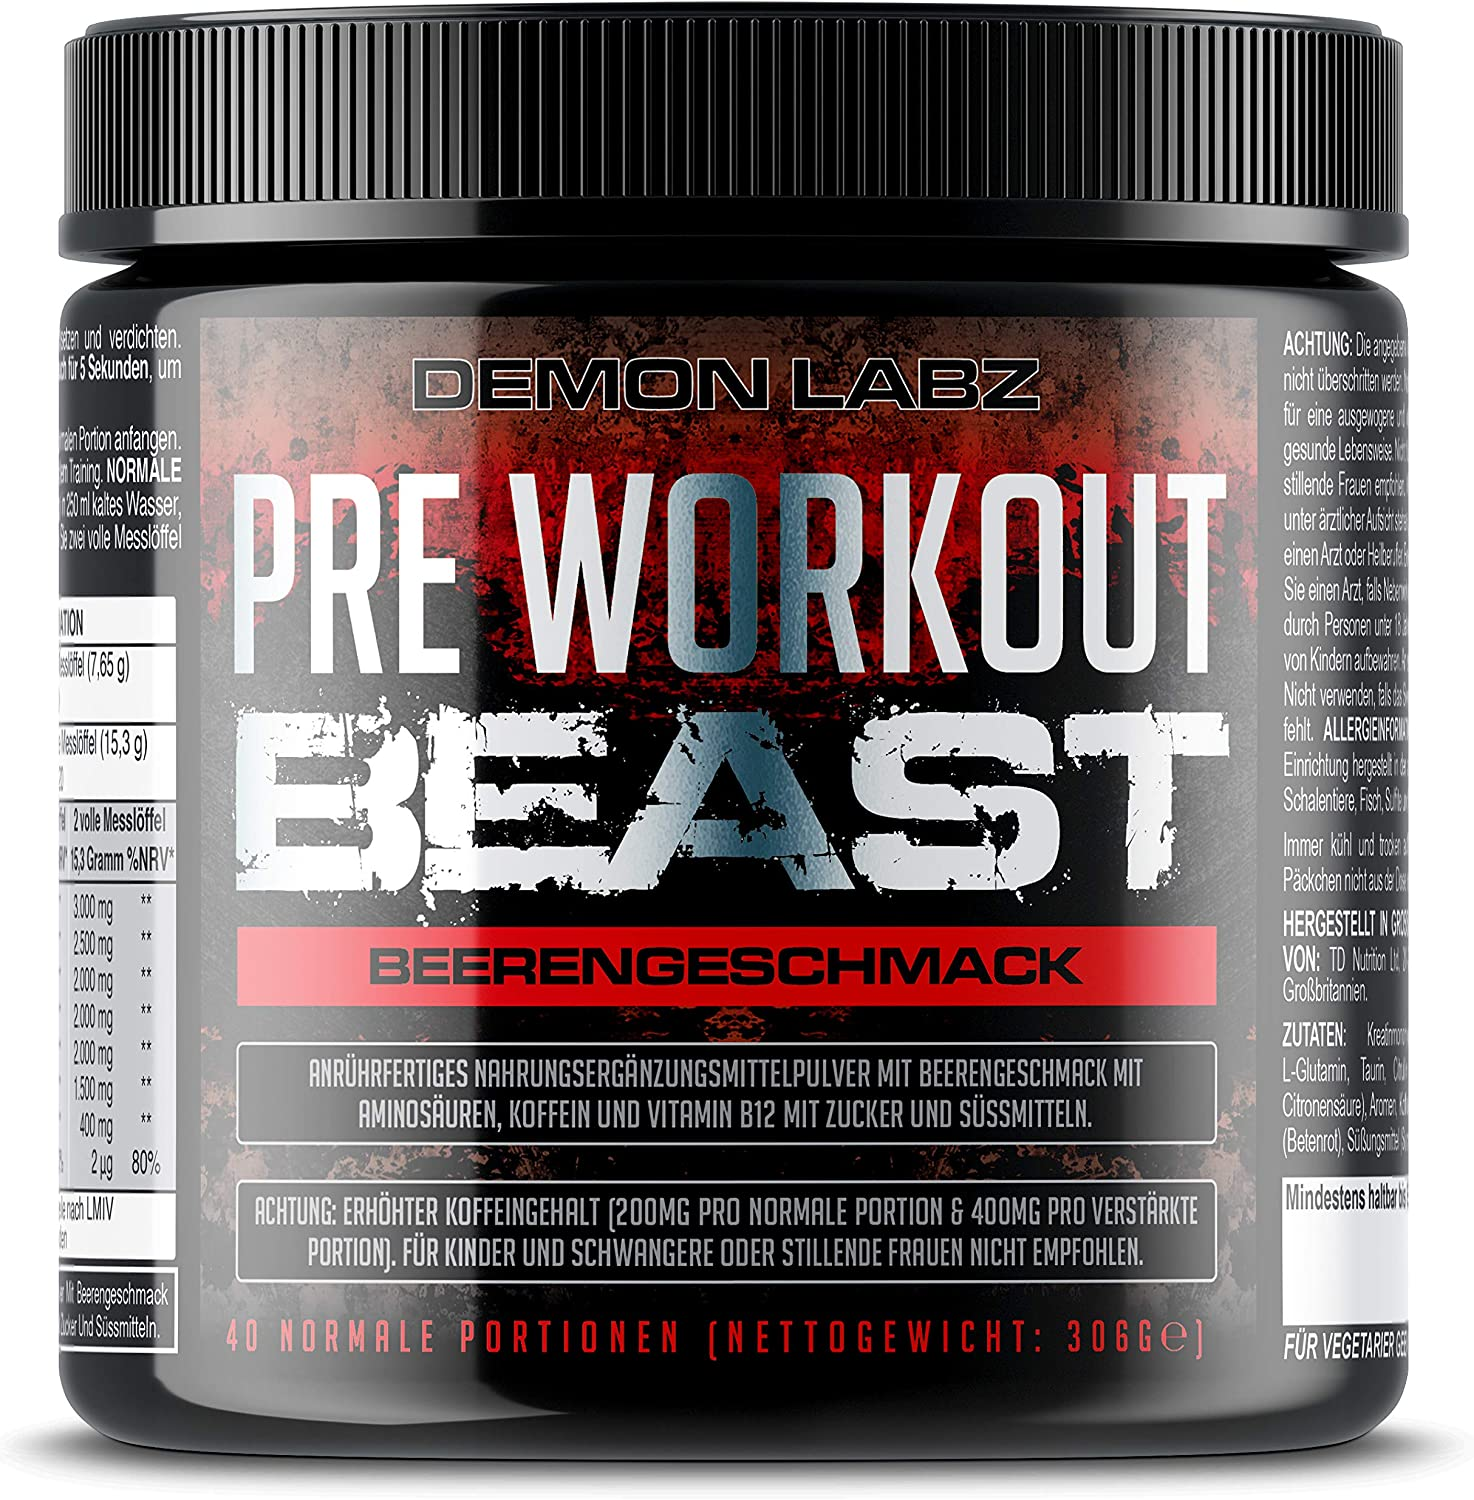 Demon Labz Workout Booster Produkt Bild.jpg